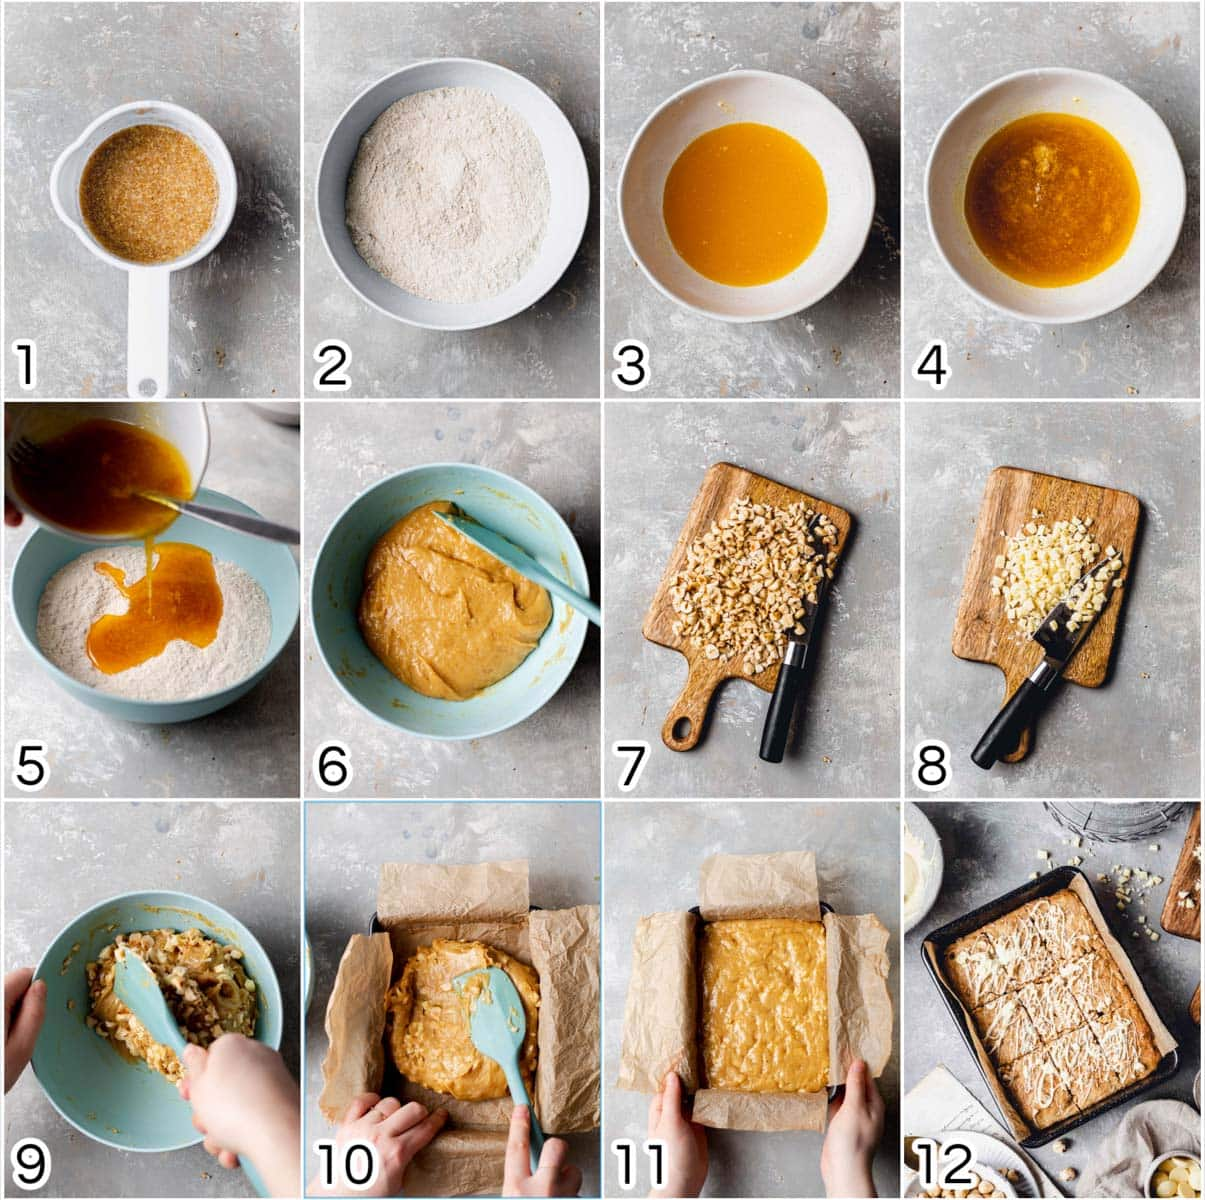 A collage of 12 images showing all the steps in baking a vegan blondie.